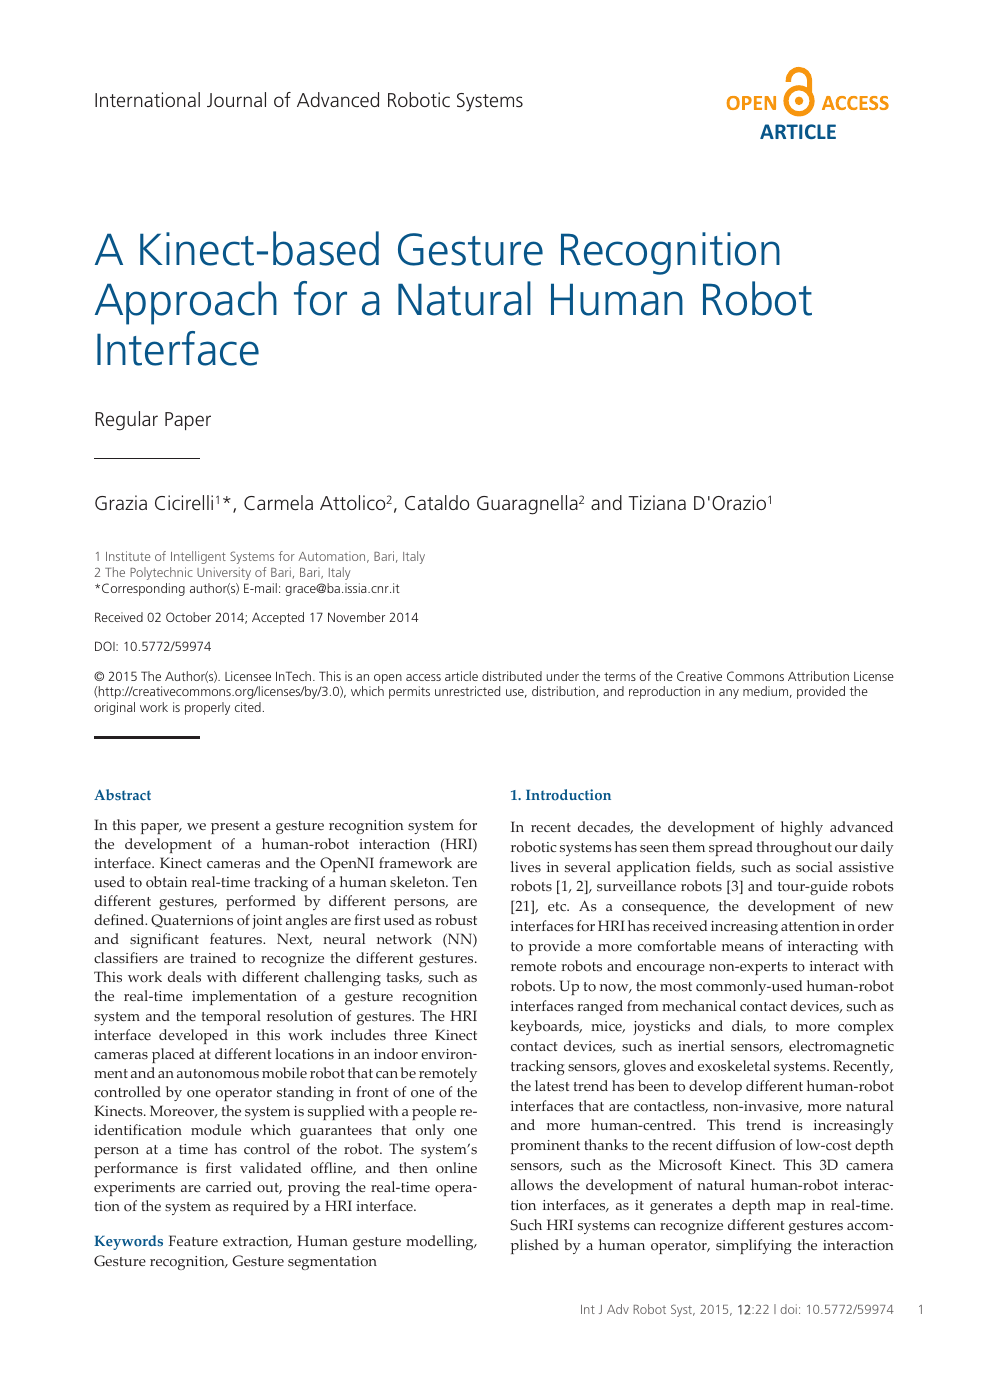 A Kinect-based Gesture Recognition Approach for a Natural Human